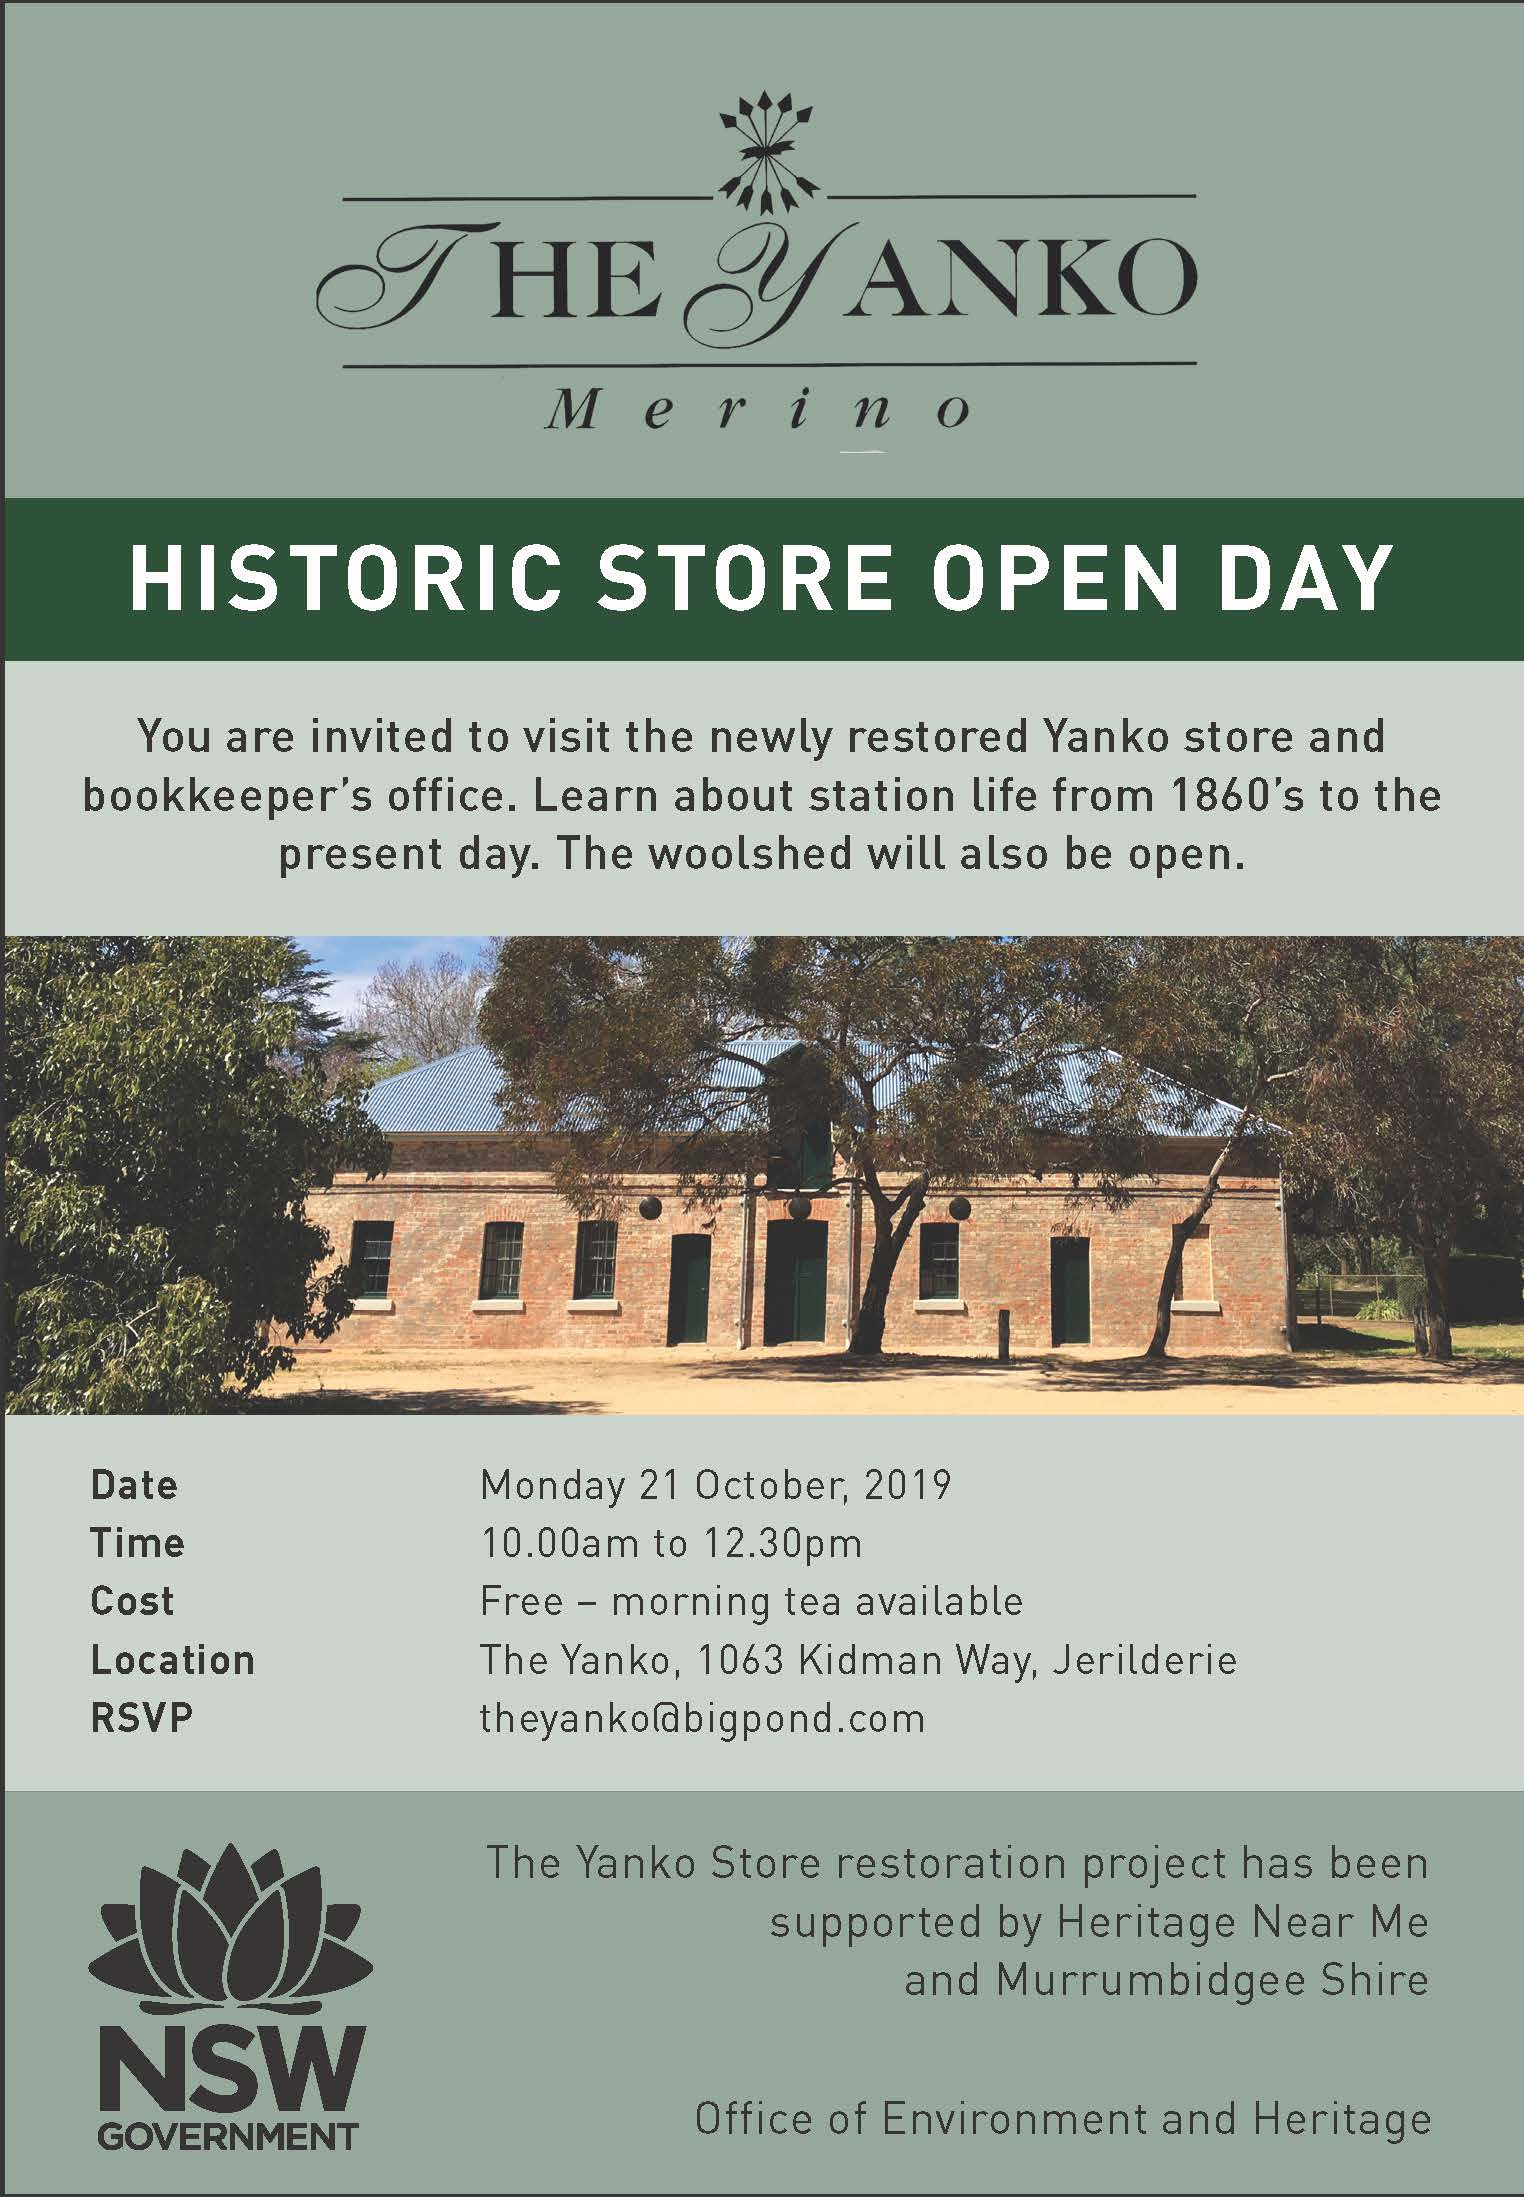 The Yanko Historic Store Open Day